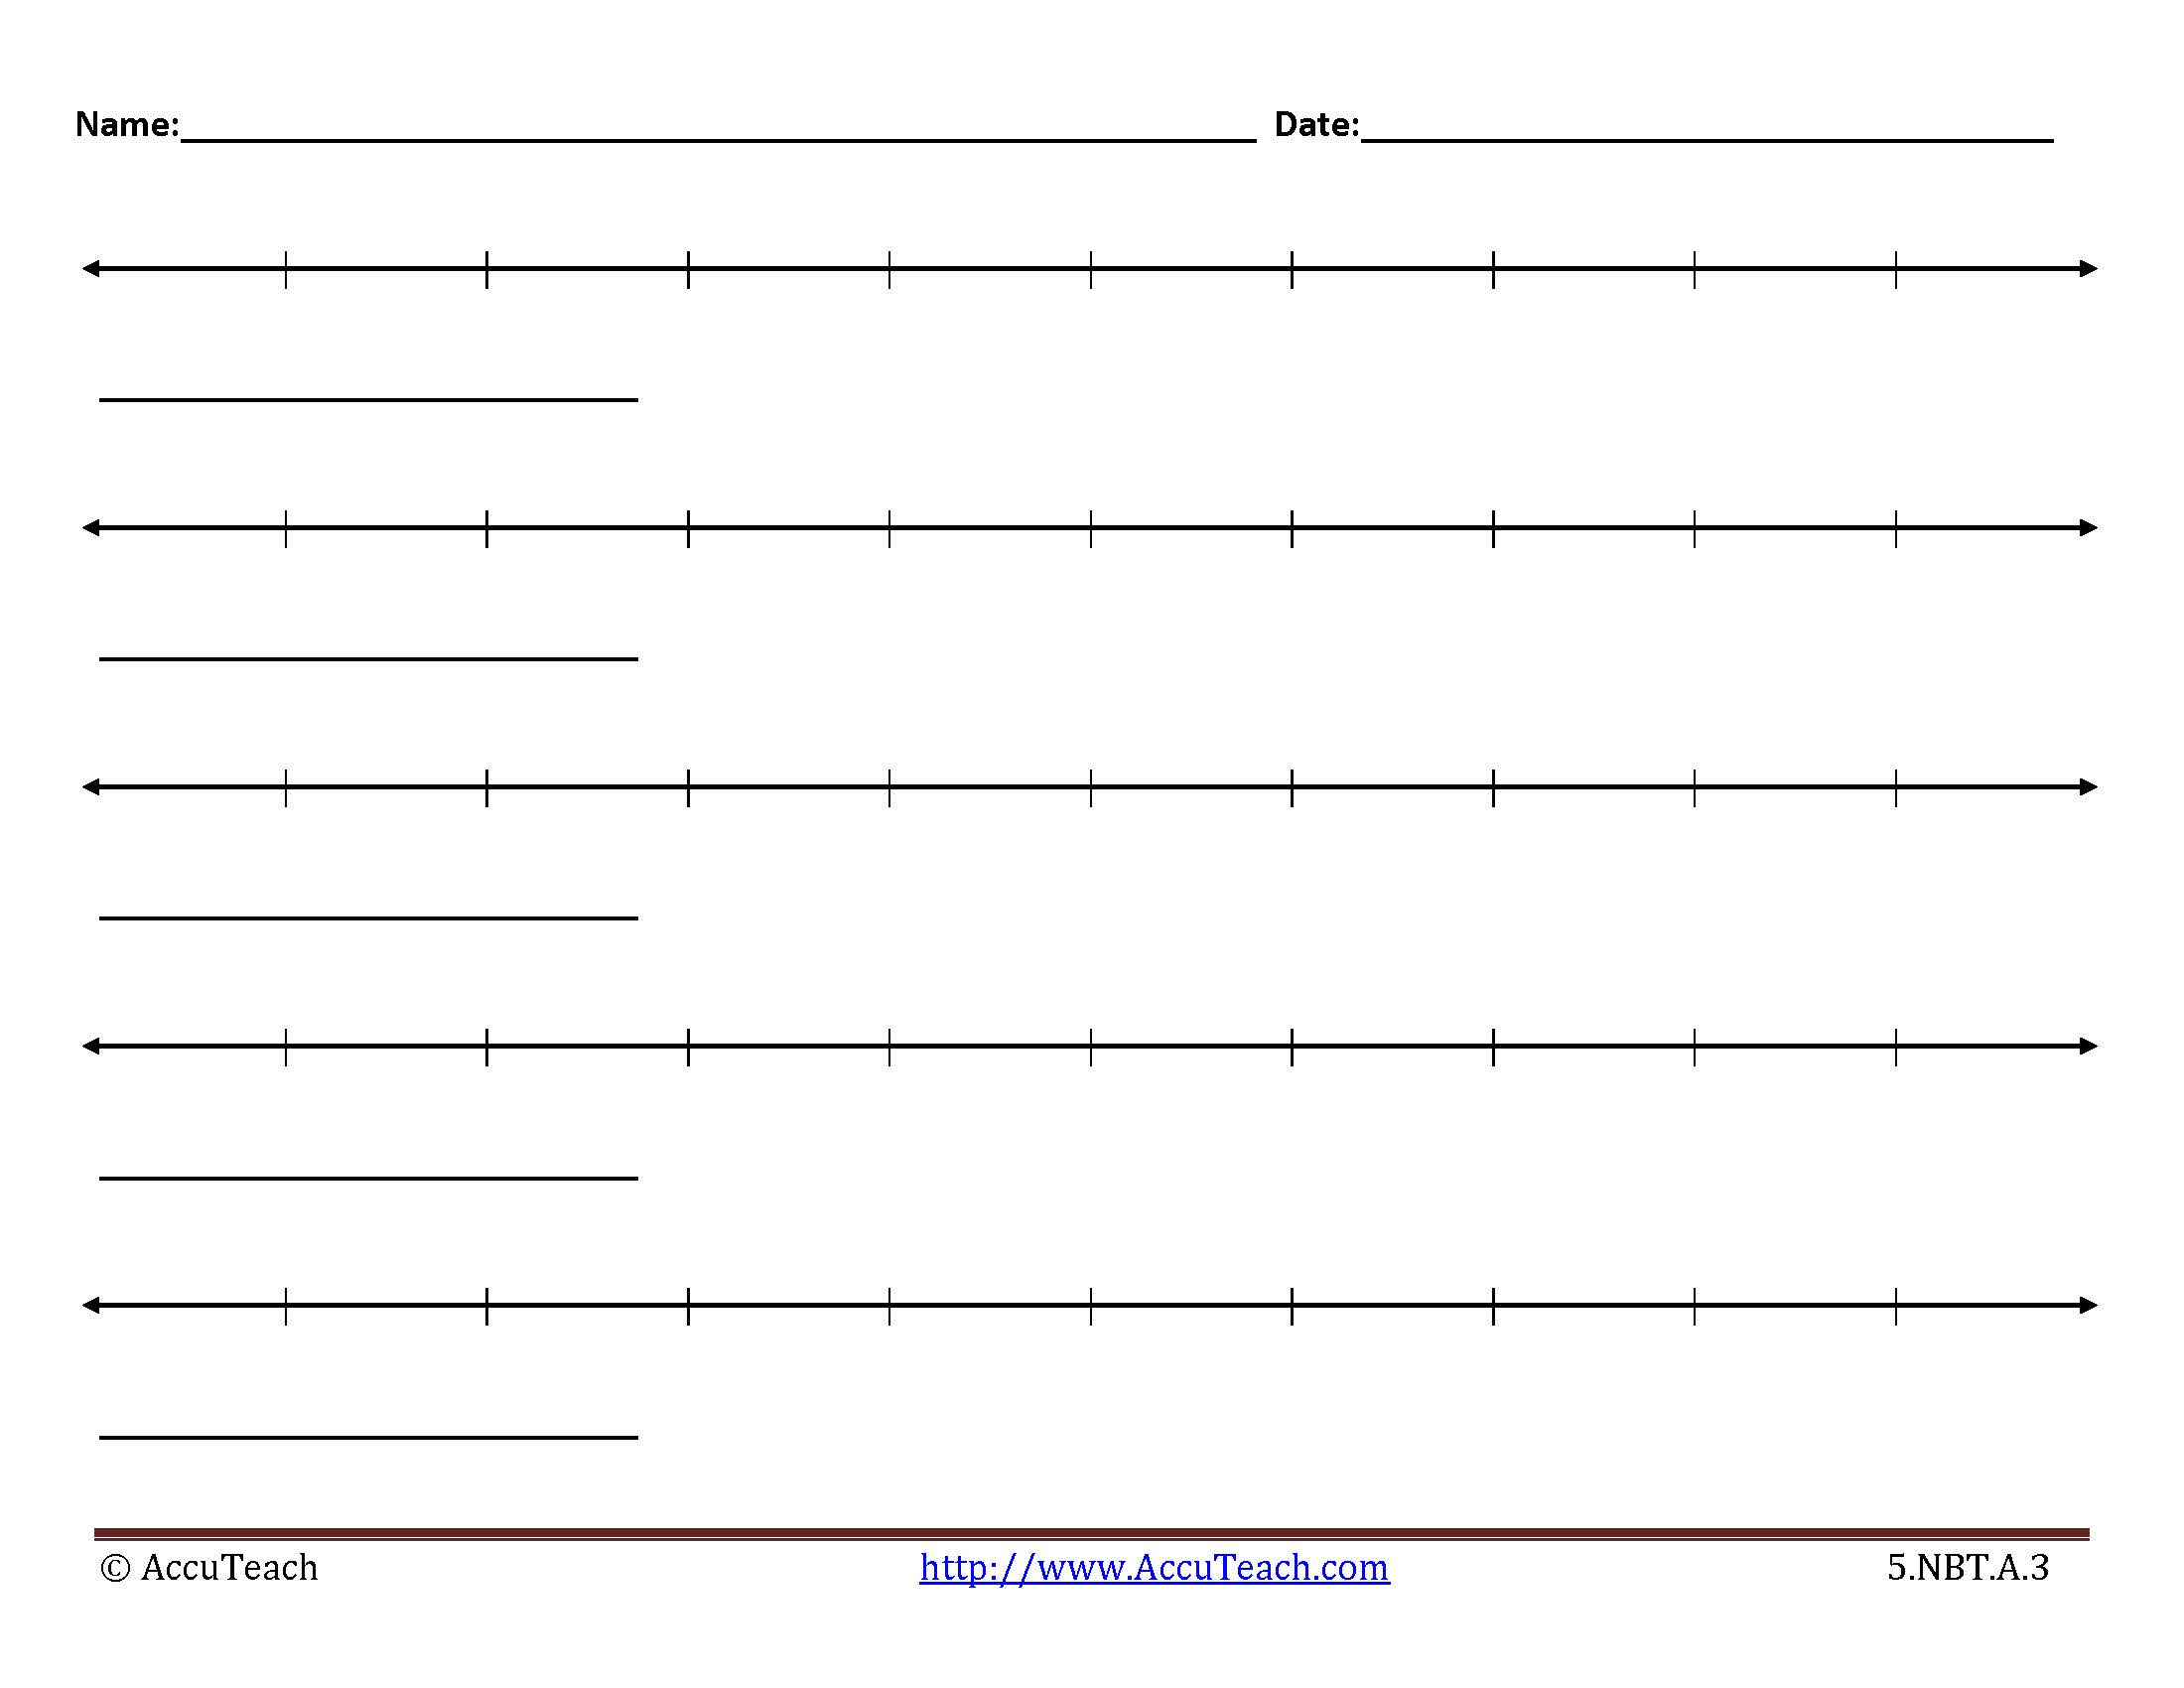 photo regarding Printable Blank Number Lines titled 5.NBT.A.3 Lesson Recreation Printable Blank Variety Traces#11